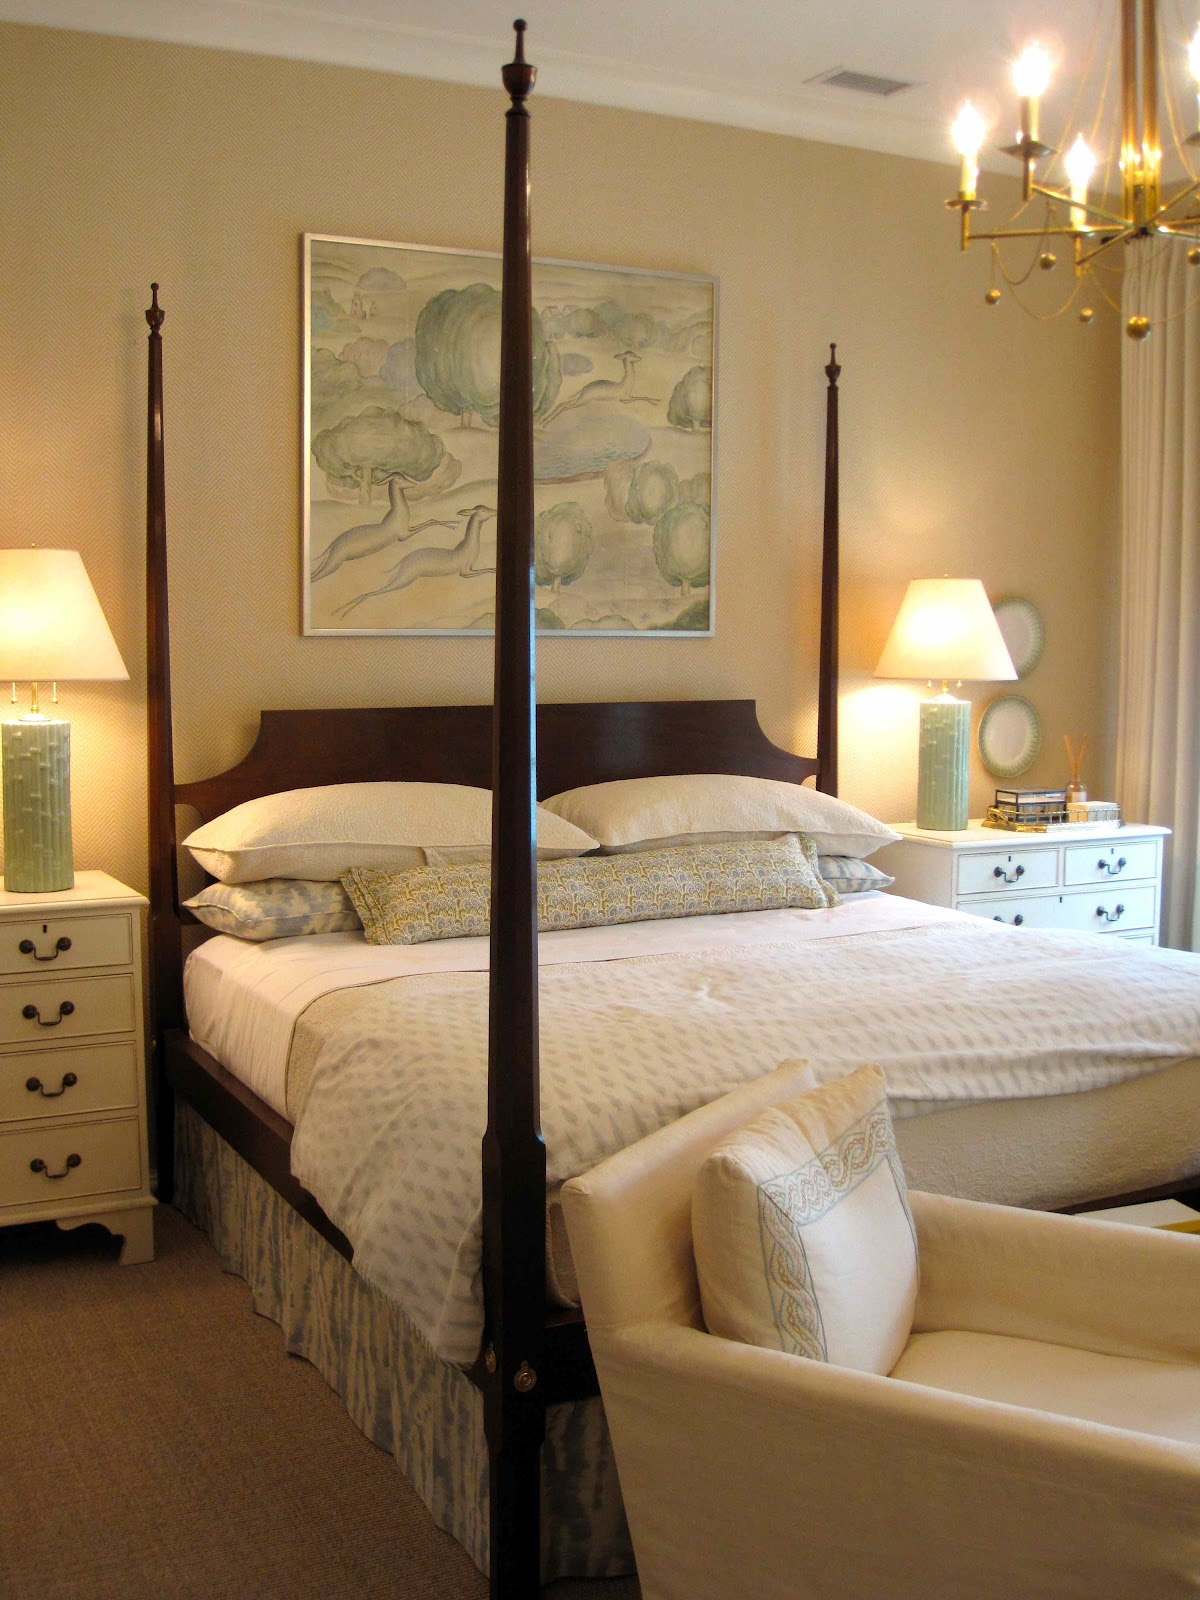 Tour of coastal living 39 s 2012 ultimate beach house - Coastal living bedroom decorating ideas ...